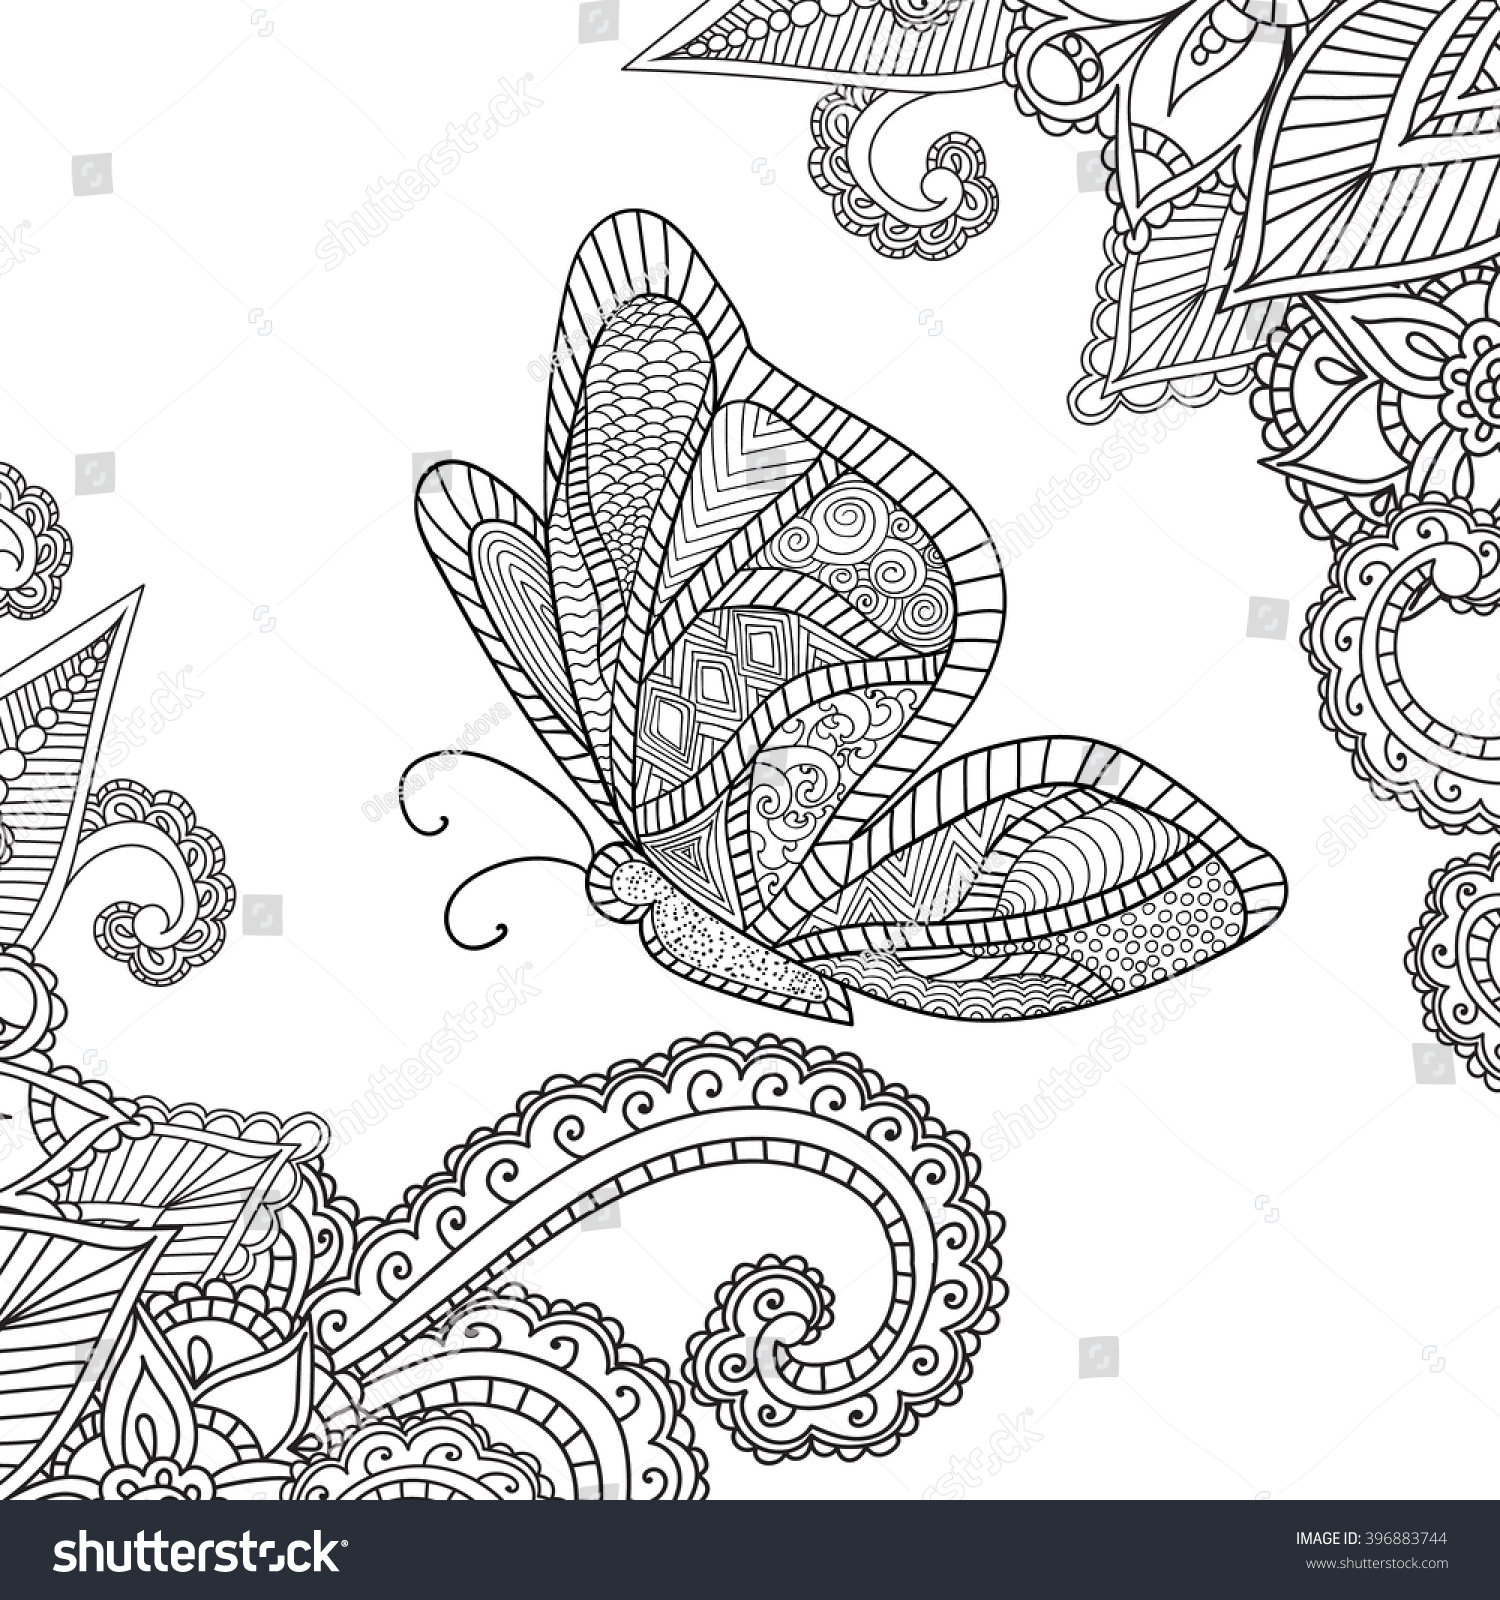 Coloring Pages Adults Doodles Abstract Floral Design Stock Vector ...